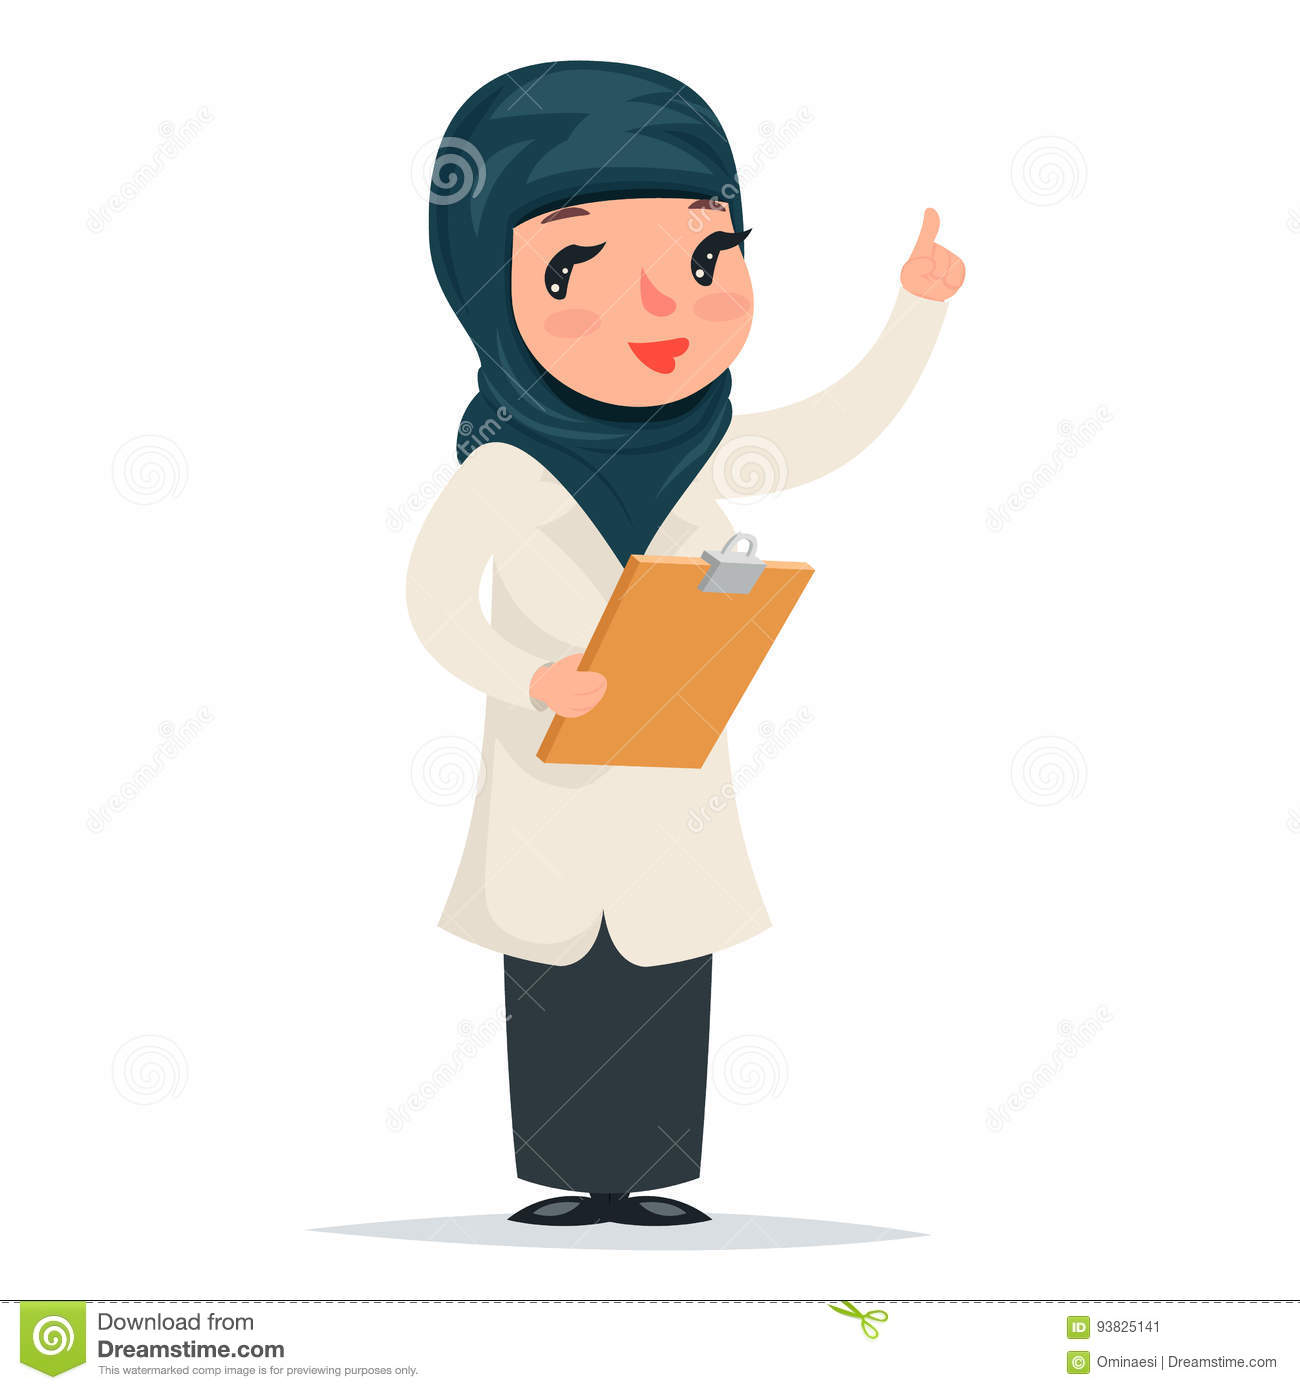 Female Girl Cute Arab Doctor with Clipboard in Hands Forefinger up Advice Preaching Admonition Character Icon